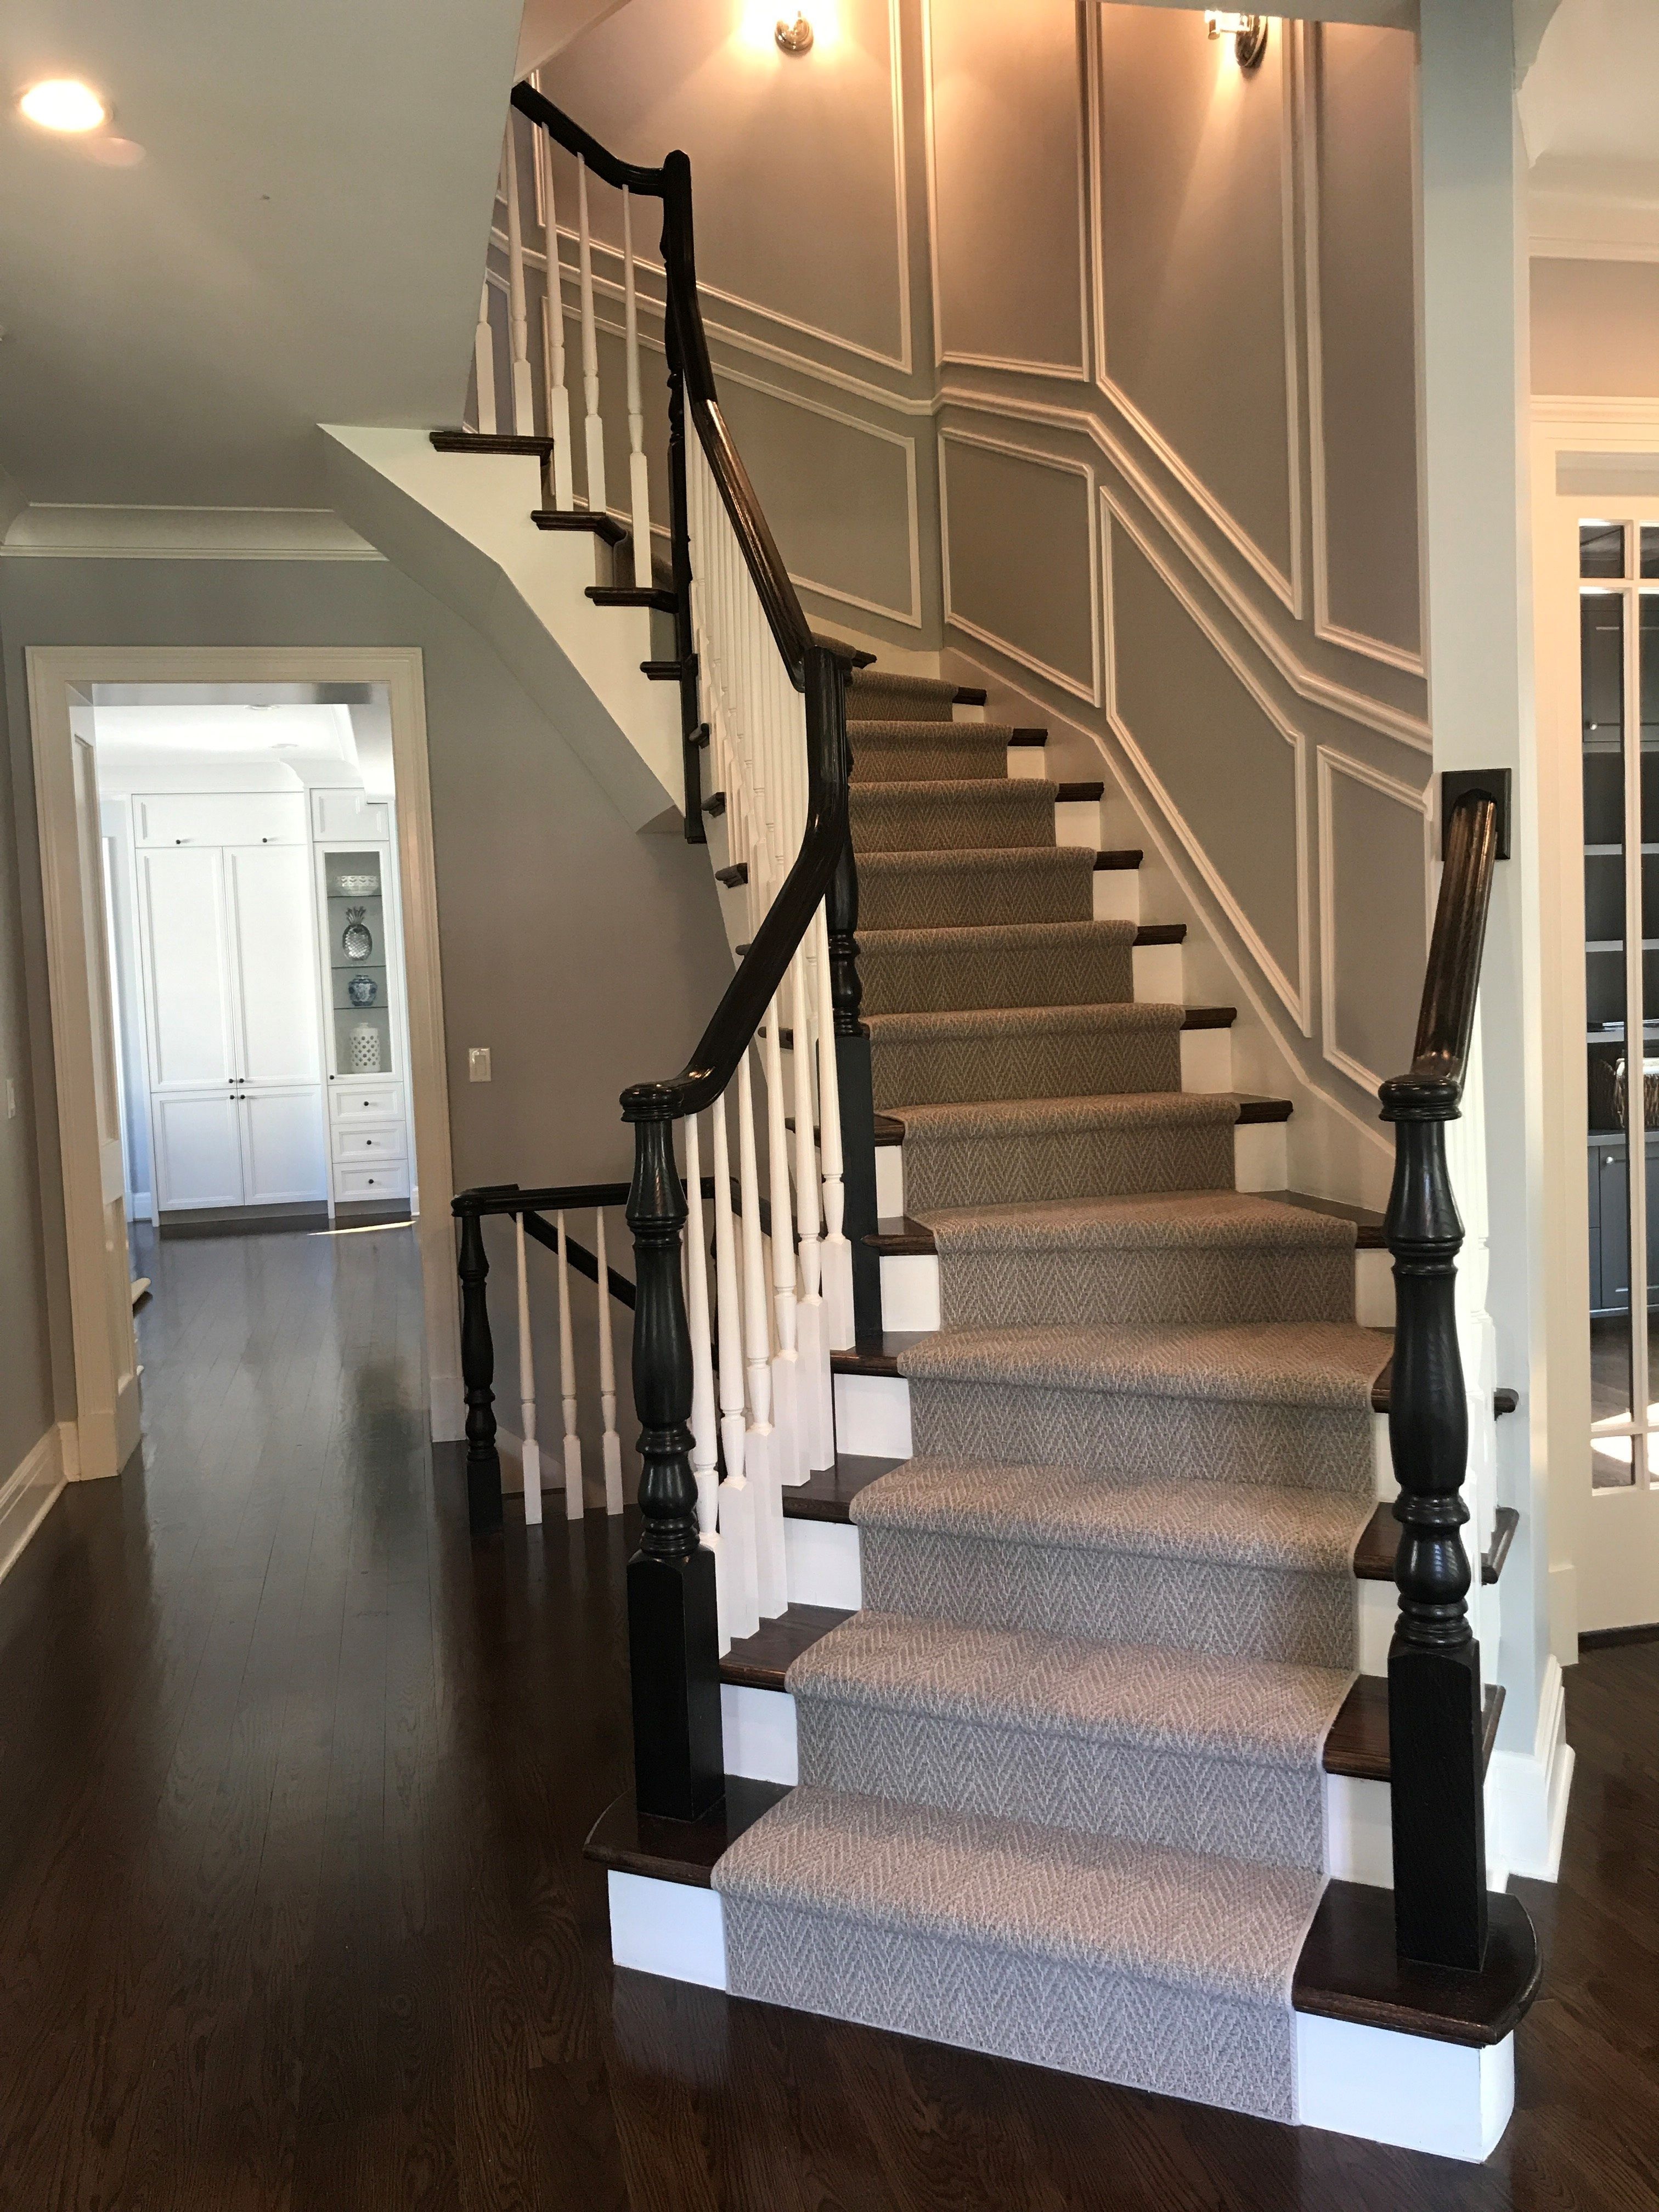 Stair Carpet Wood Wainscoting Wainscoting Stairs Florida Home